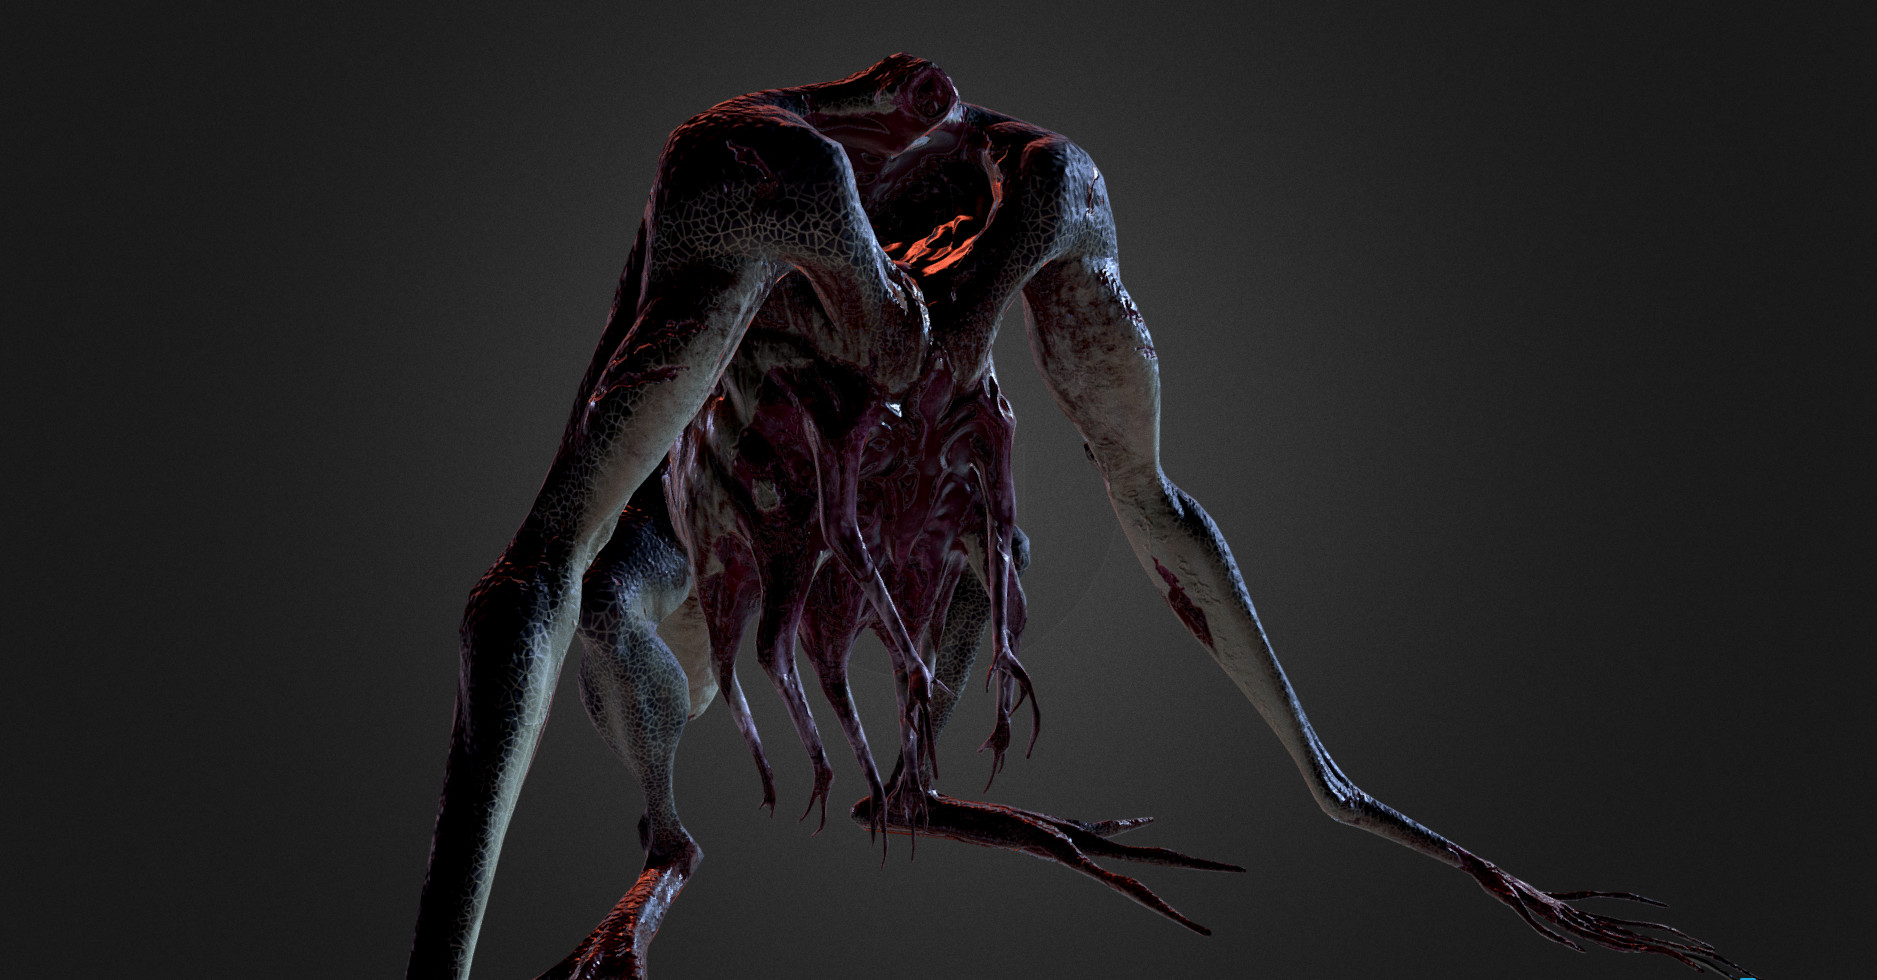 Joe bush 2017 10 06 21 33 09 strangler by arcandio 3d model sketchfab